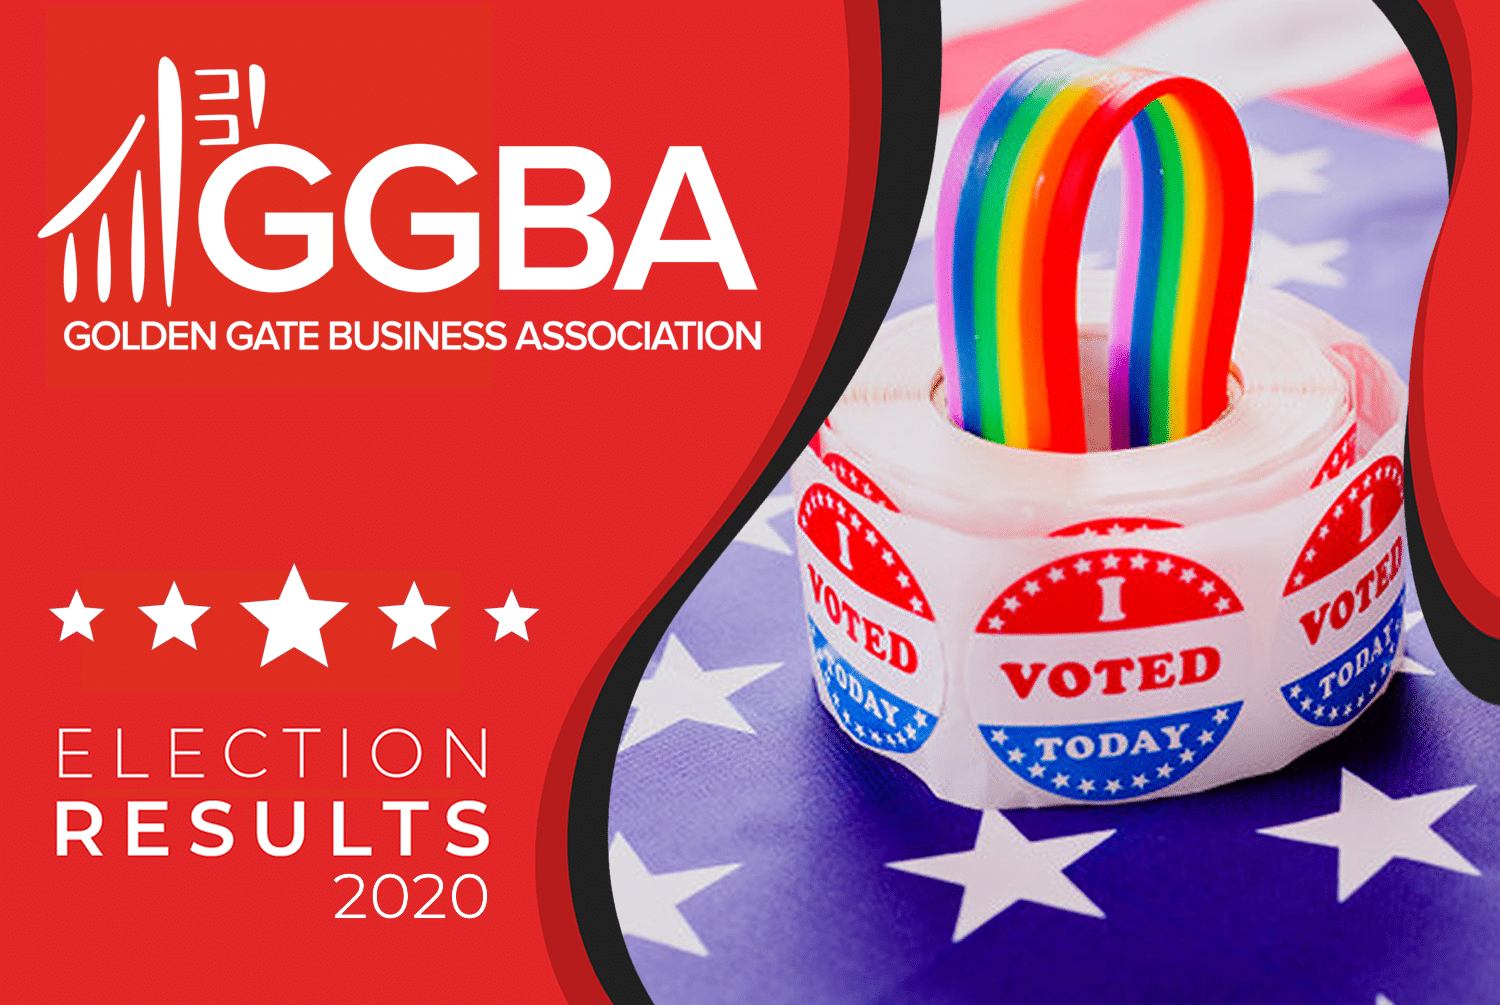 GGBA Election Results